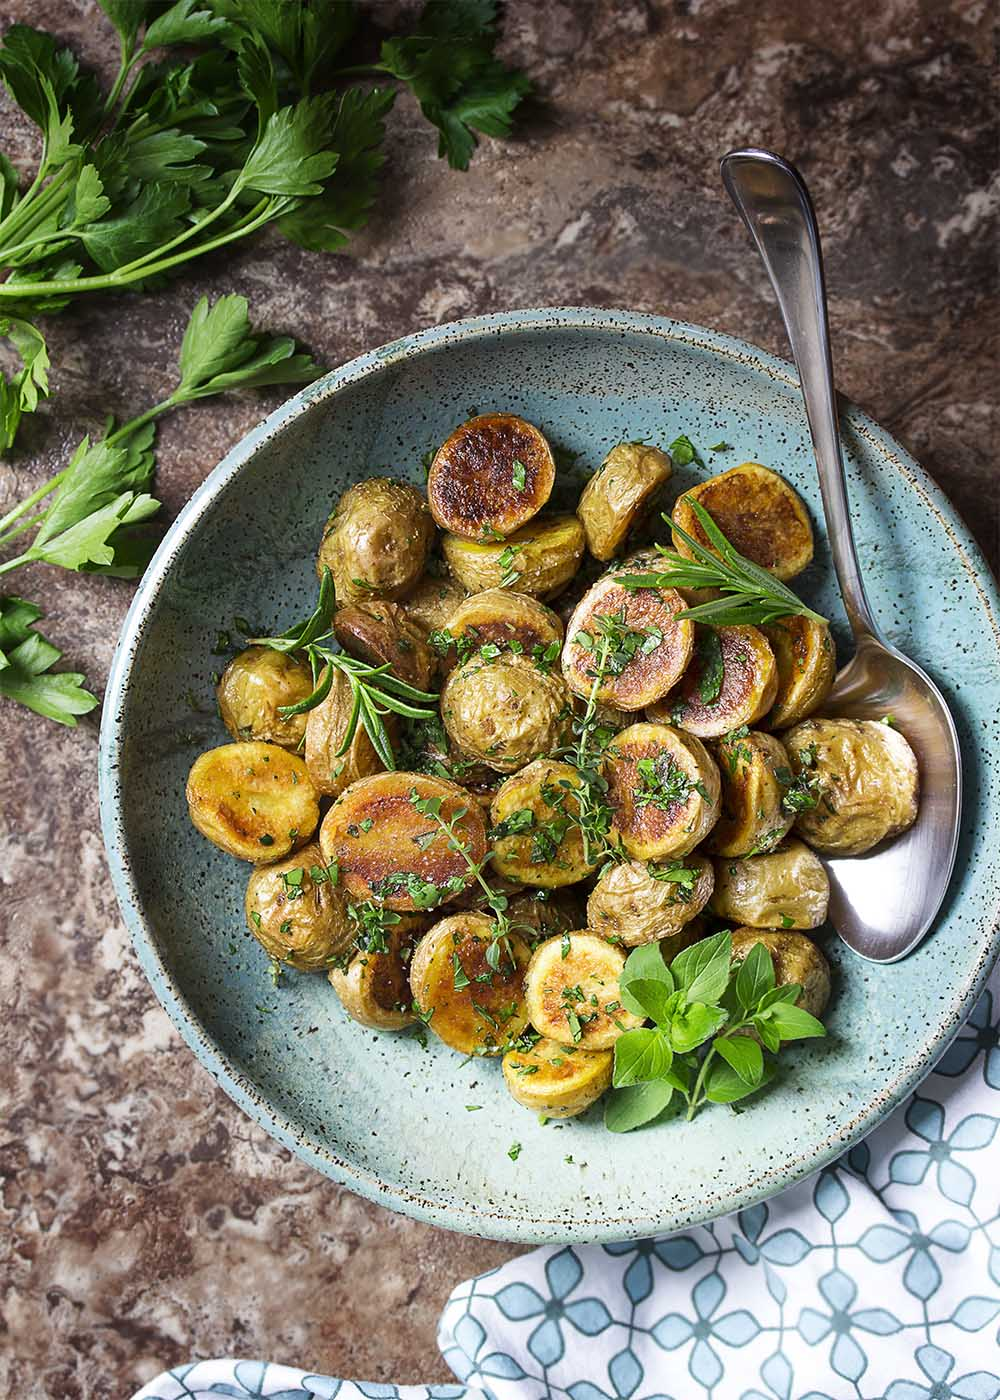 Top view of a serving dish of herb roasted potatoes with a large serving spoon in the bowl.